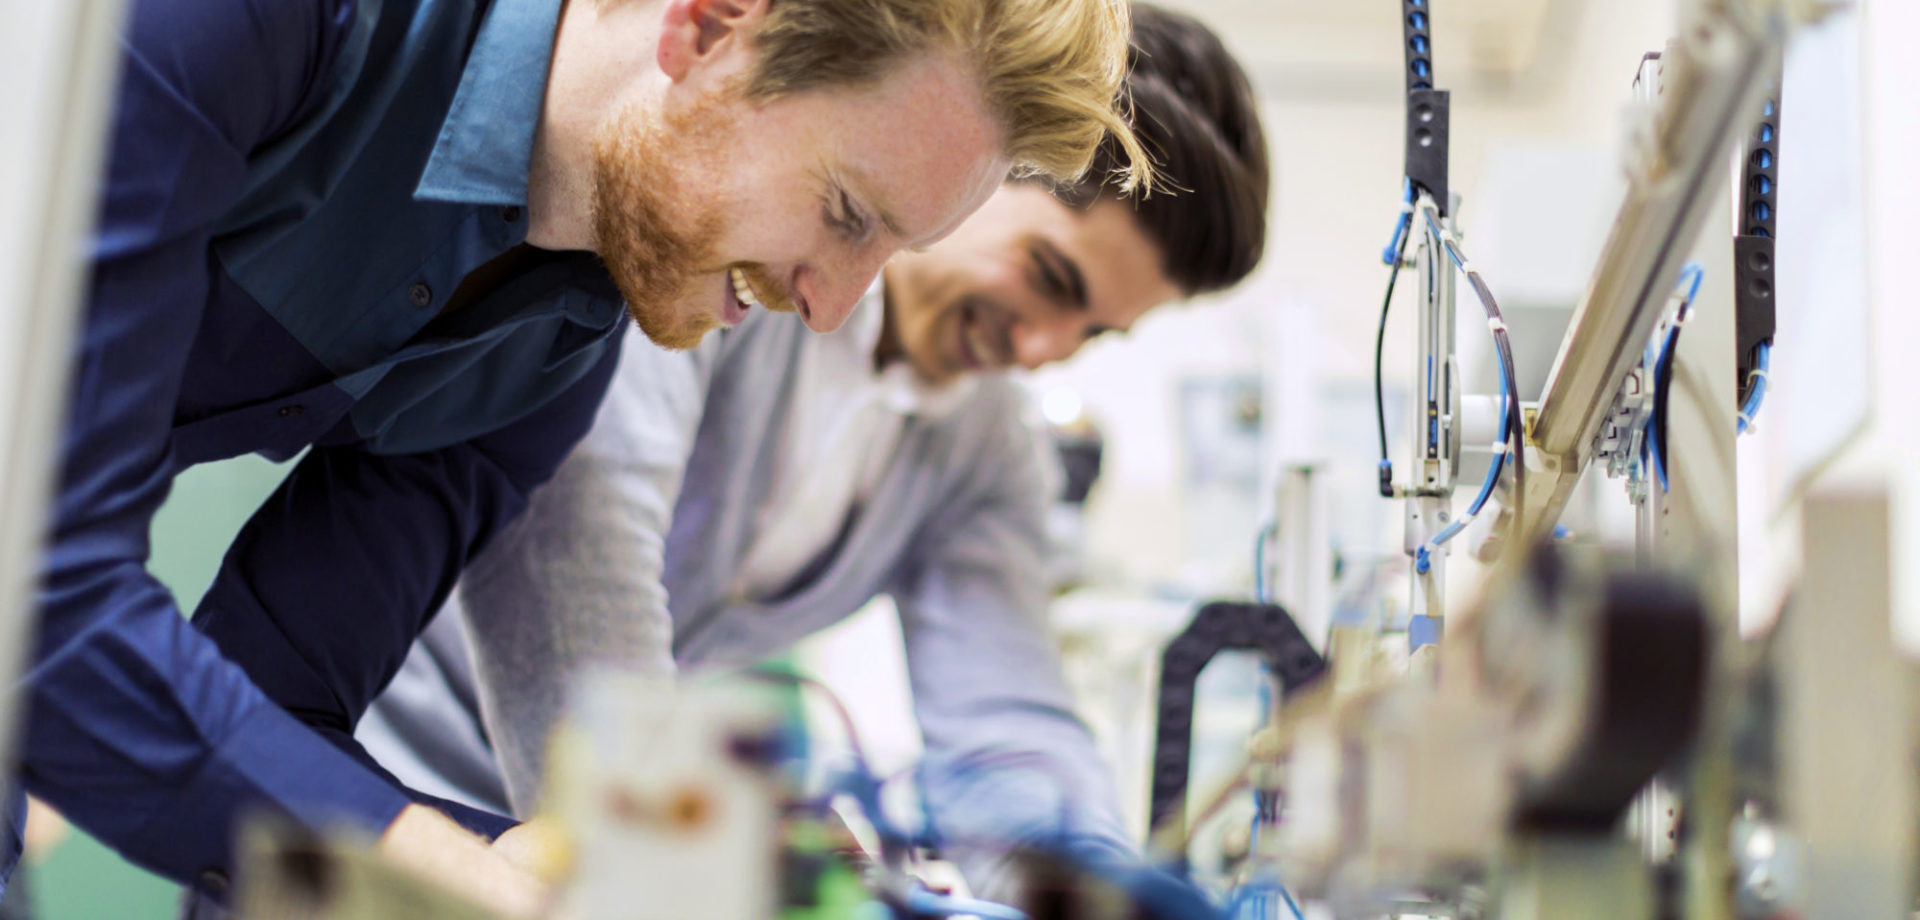 Two young handsome engineers working on electronics components and fixing broken chips